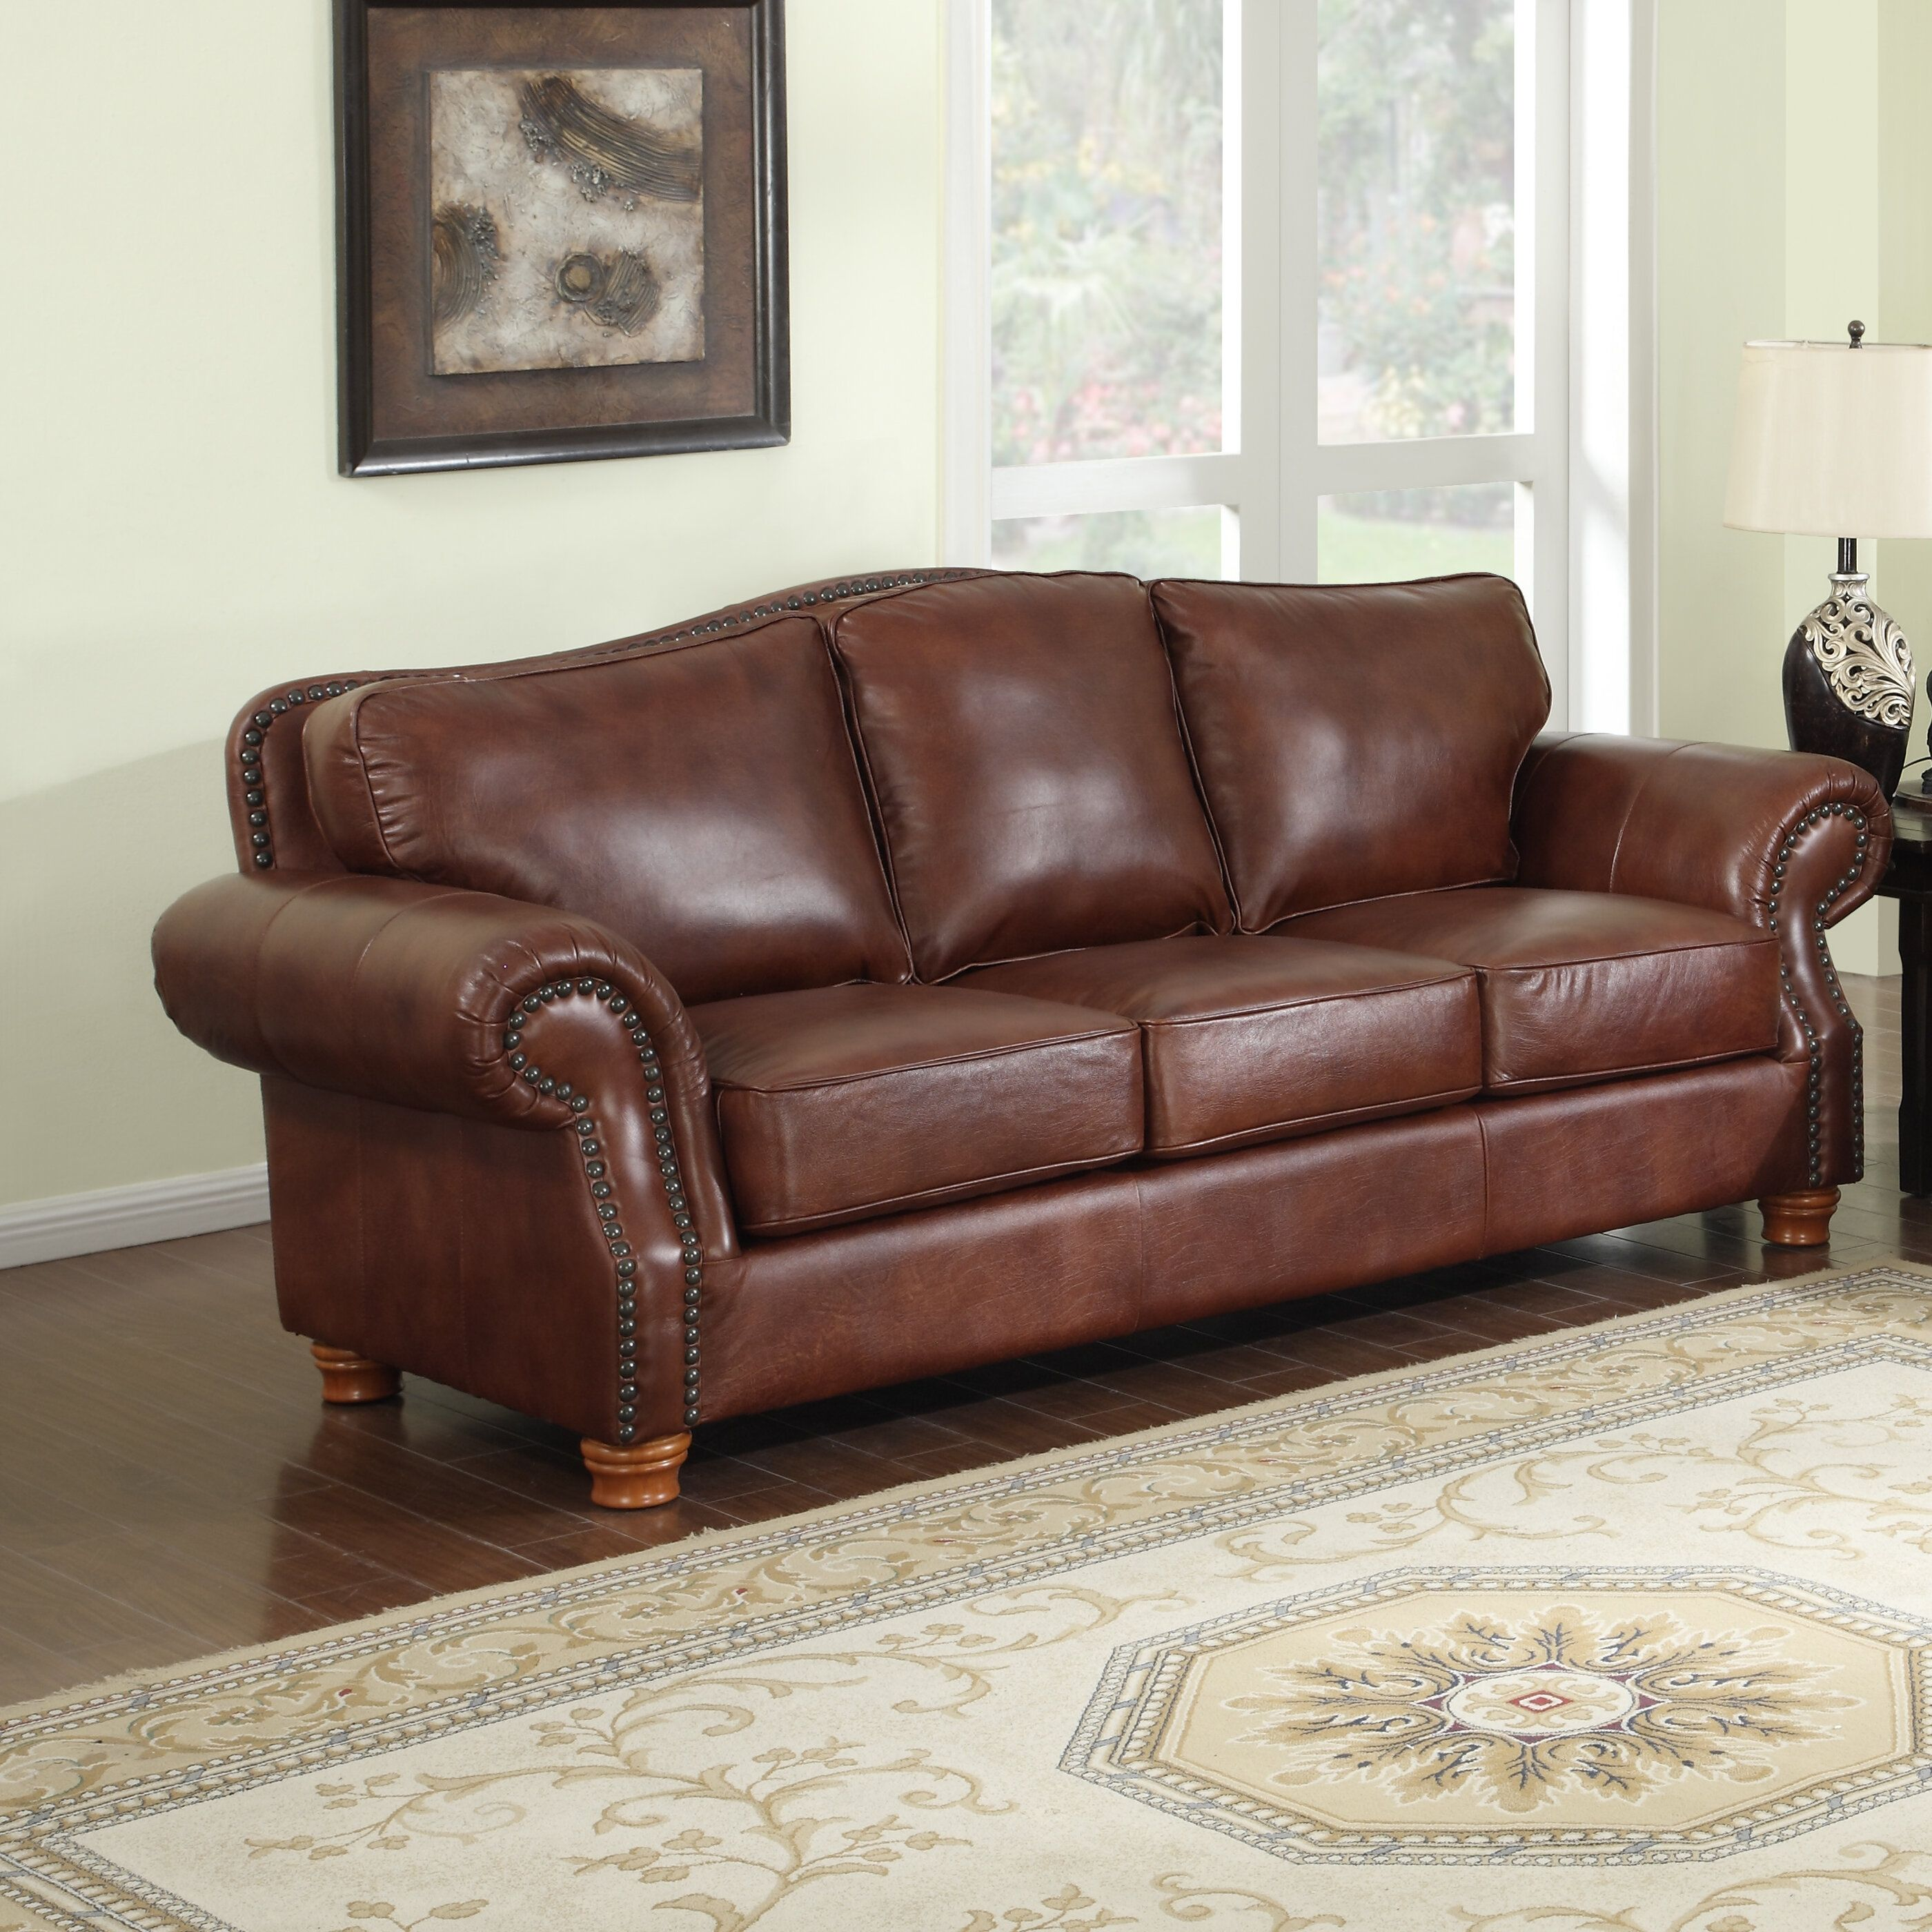 100 Percent Leather Sofa In 2020 Leather Sofa Brown Leather Sofa Top Grain Leather Sofa